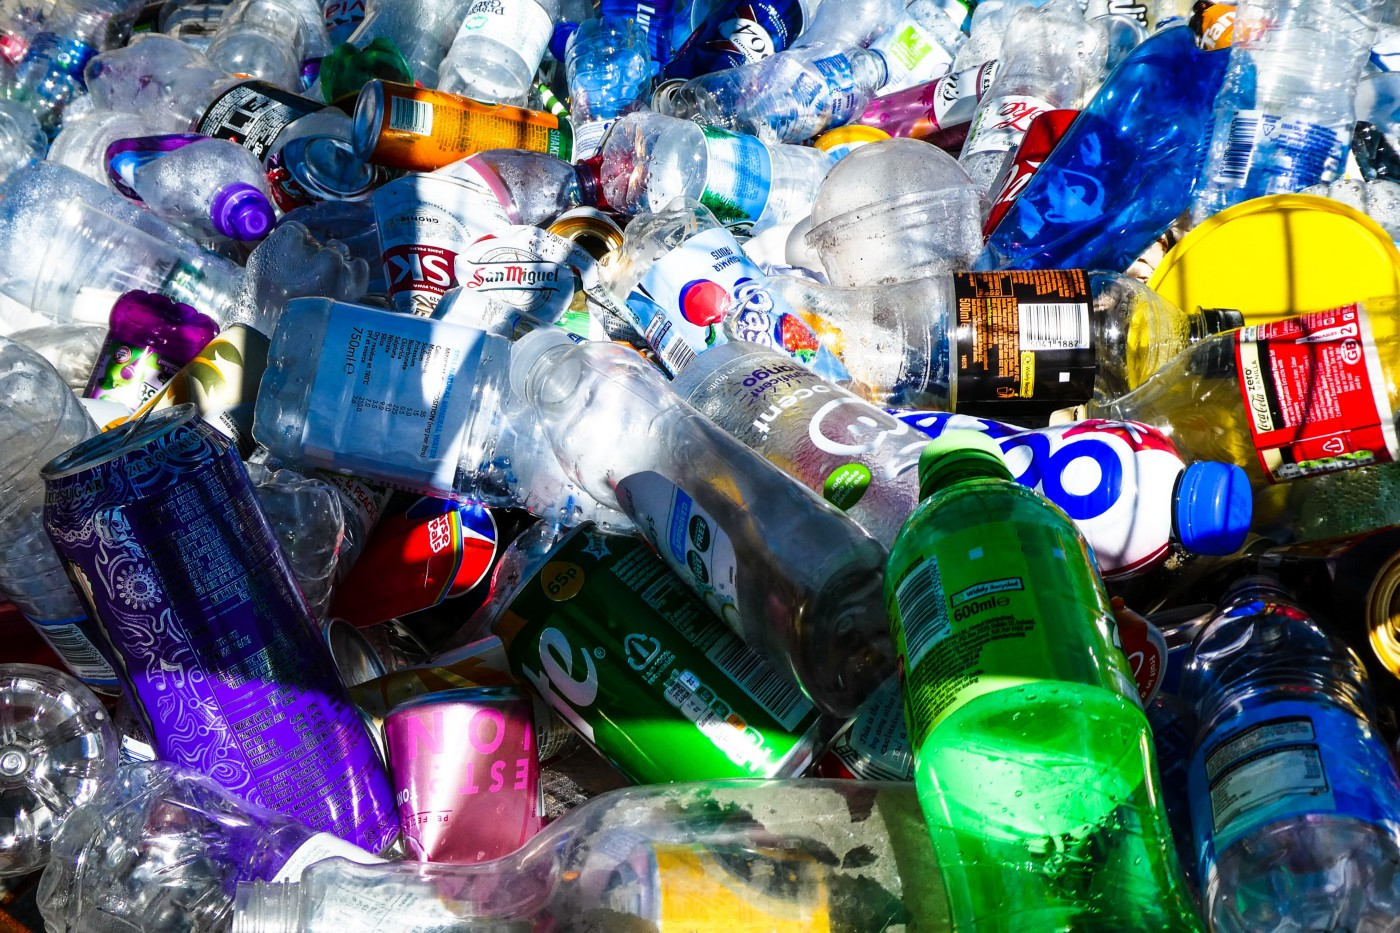 Trash, trash, trash. We consume an impressive amount of beverages, snacks, and ultimately meals that come enclosed in plastic. How can we advocate for reducing plastics in circulations?